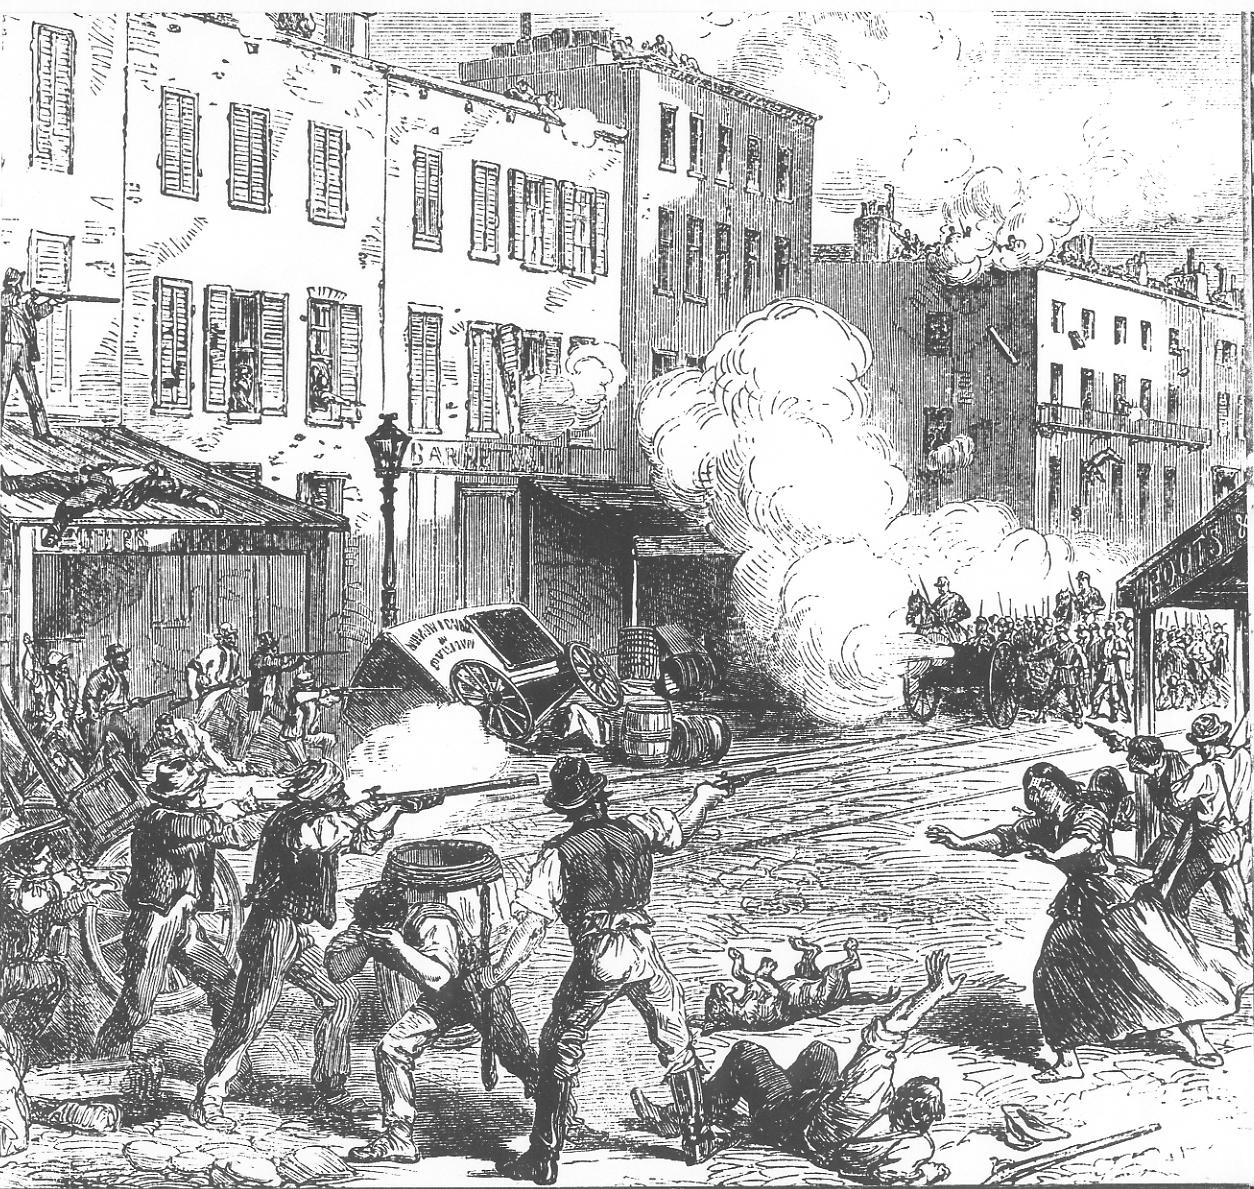 New York Draft Riots - fighting | © Moulder~commonswiki/Wikimedia Commons